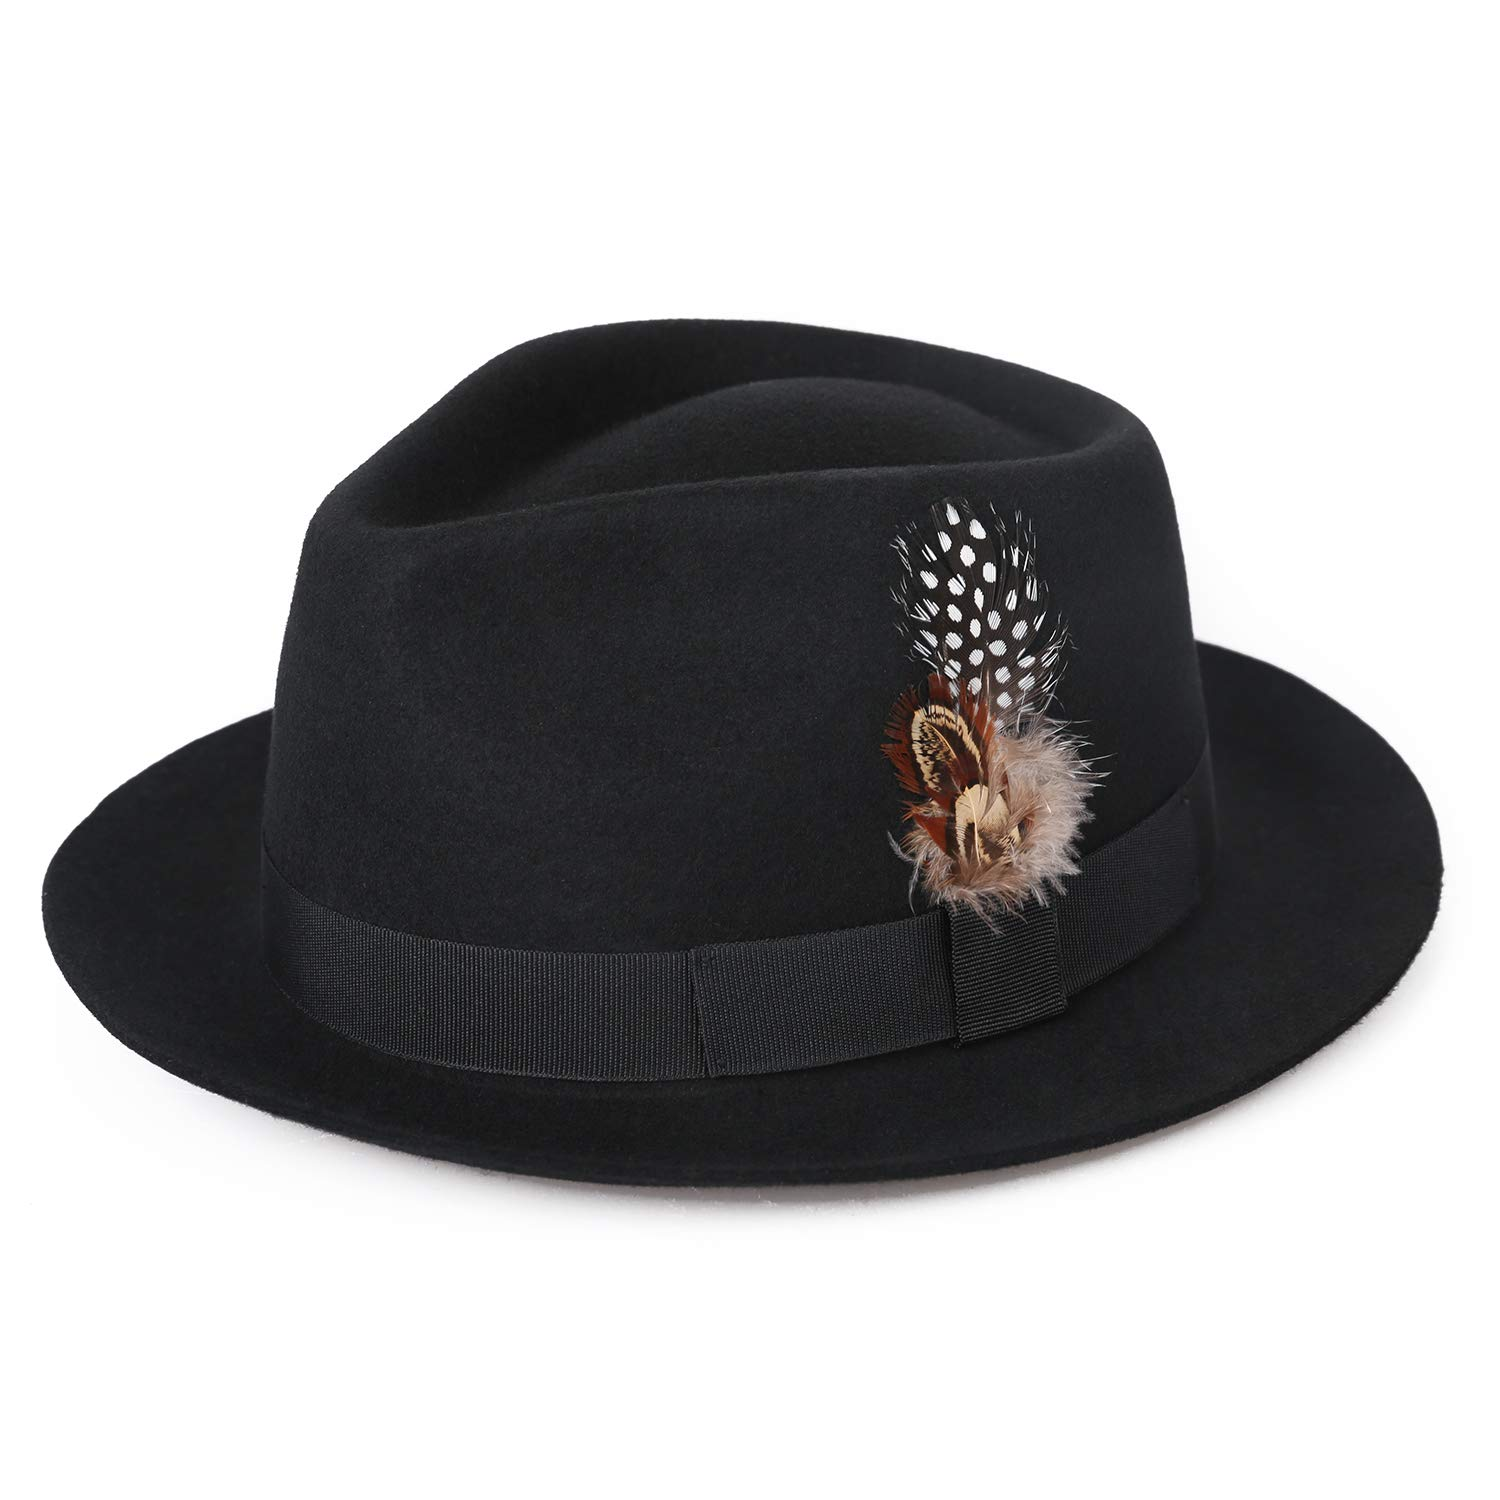 12c91bca7ad8c Deevoov Men Fedora Hats with Feather Australia Wool Felt Trilby Hat at  Amazon Men s Clothing store